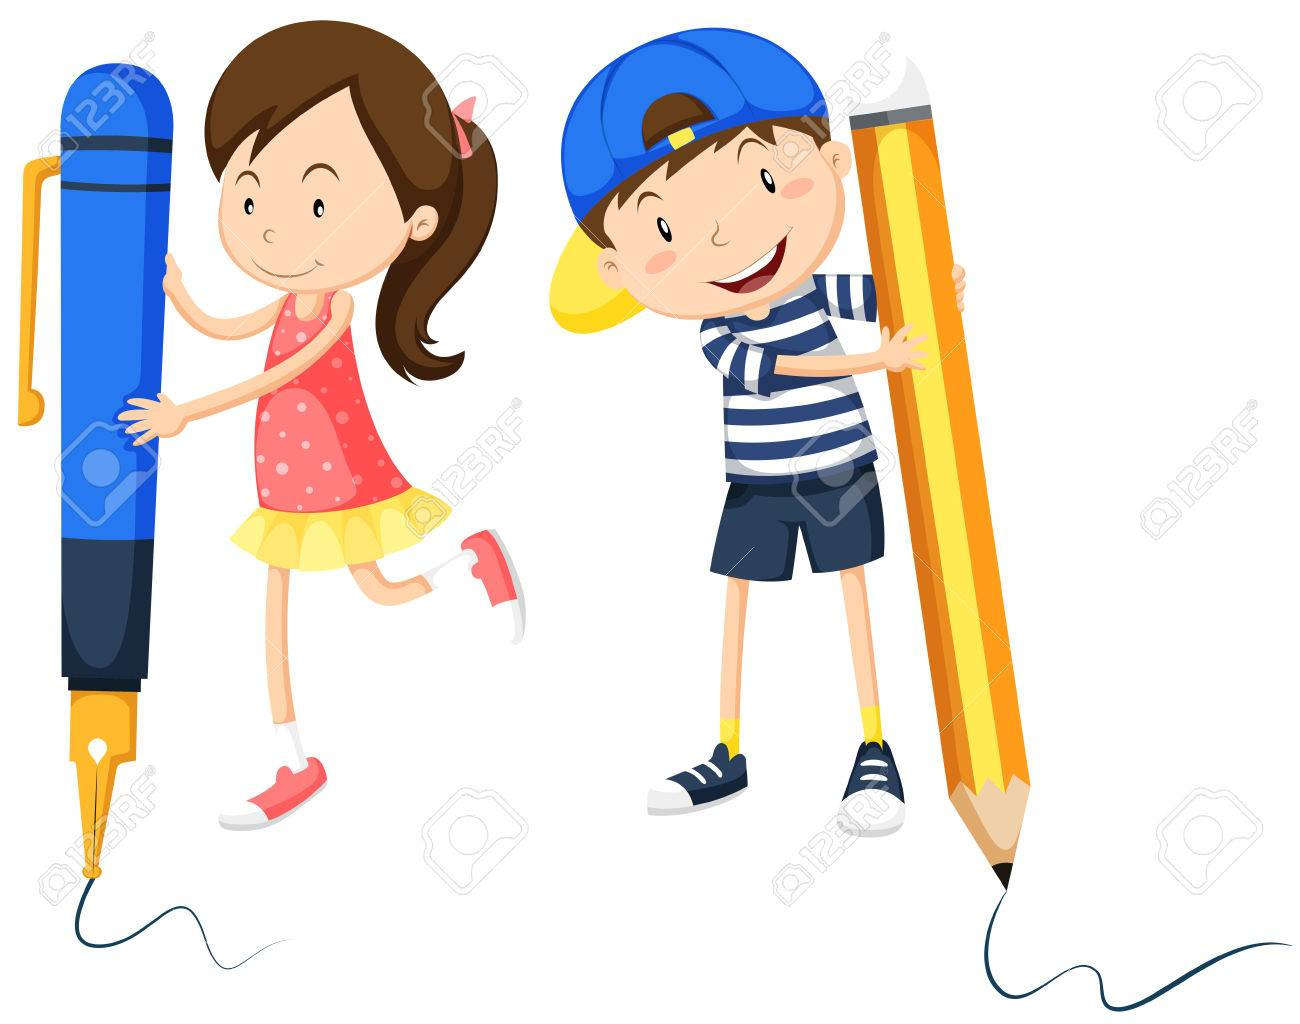 boy and girl writing on the floor illustration royalty free cliparts